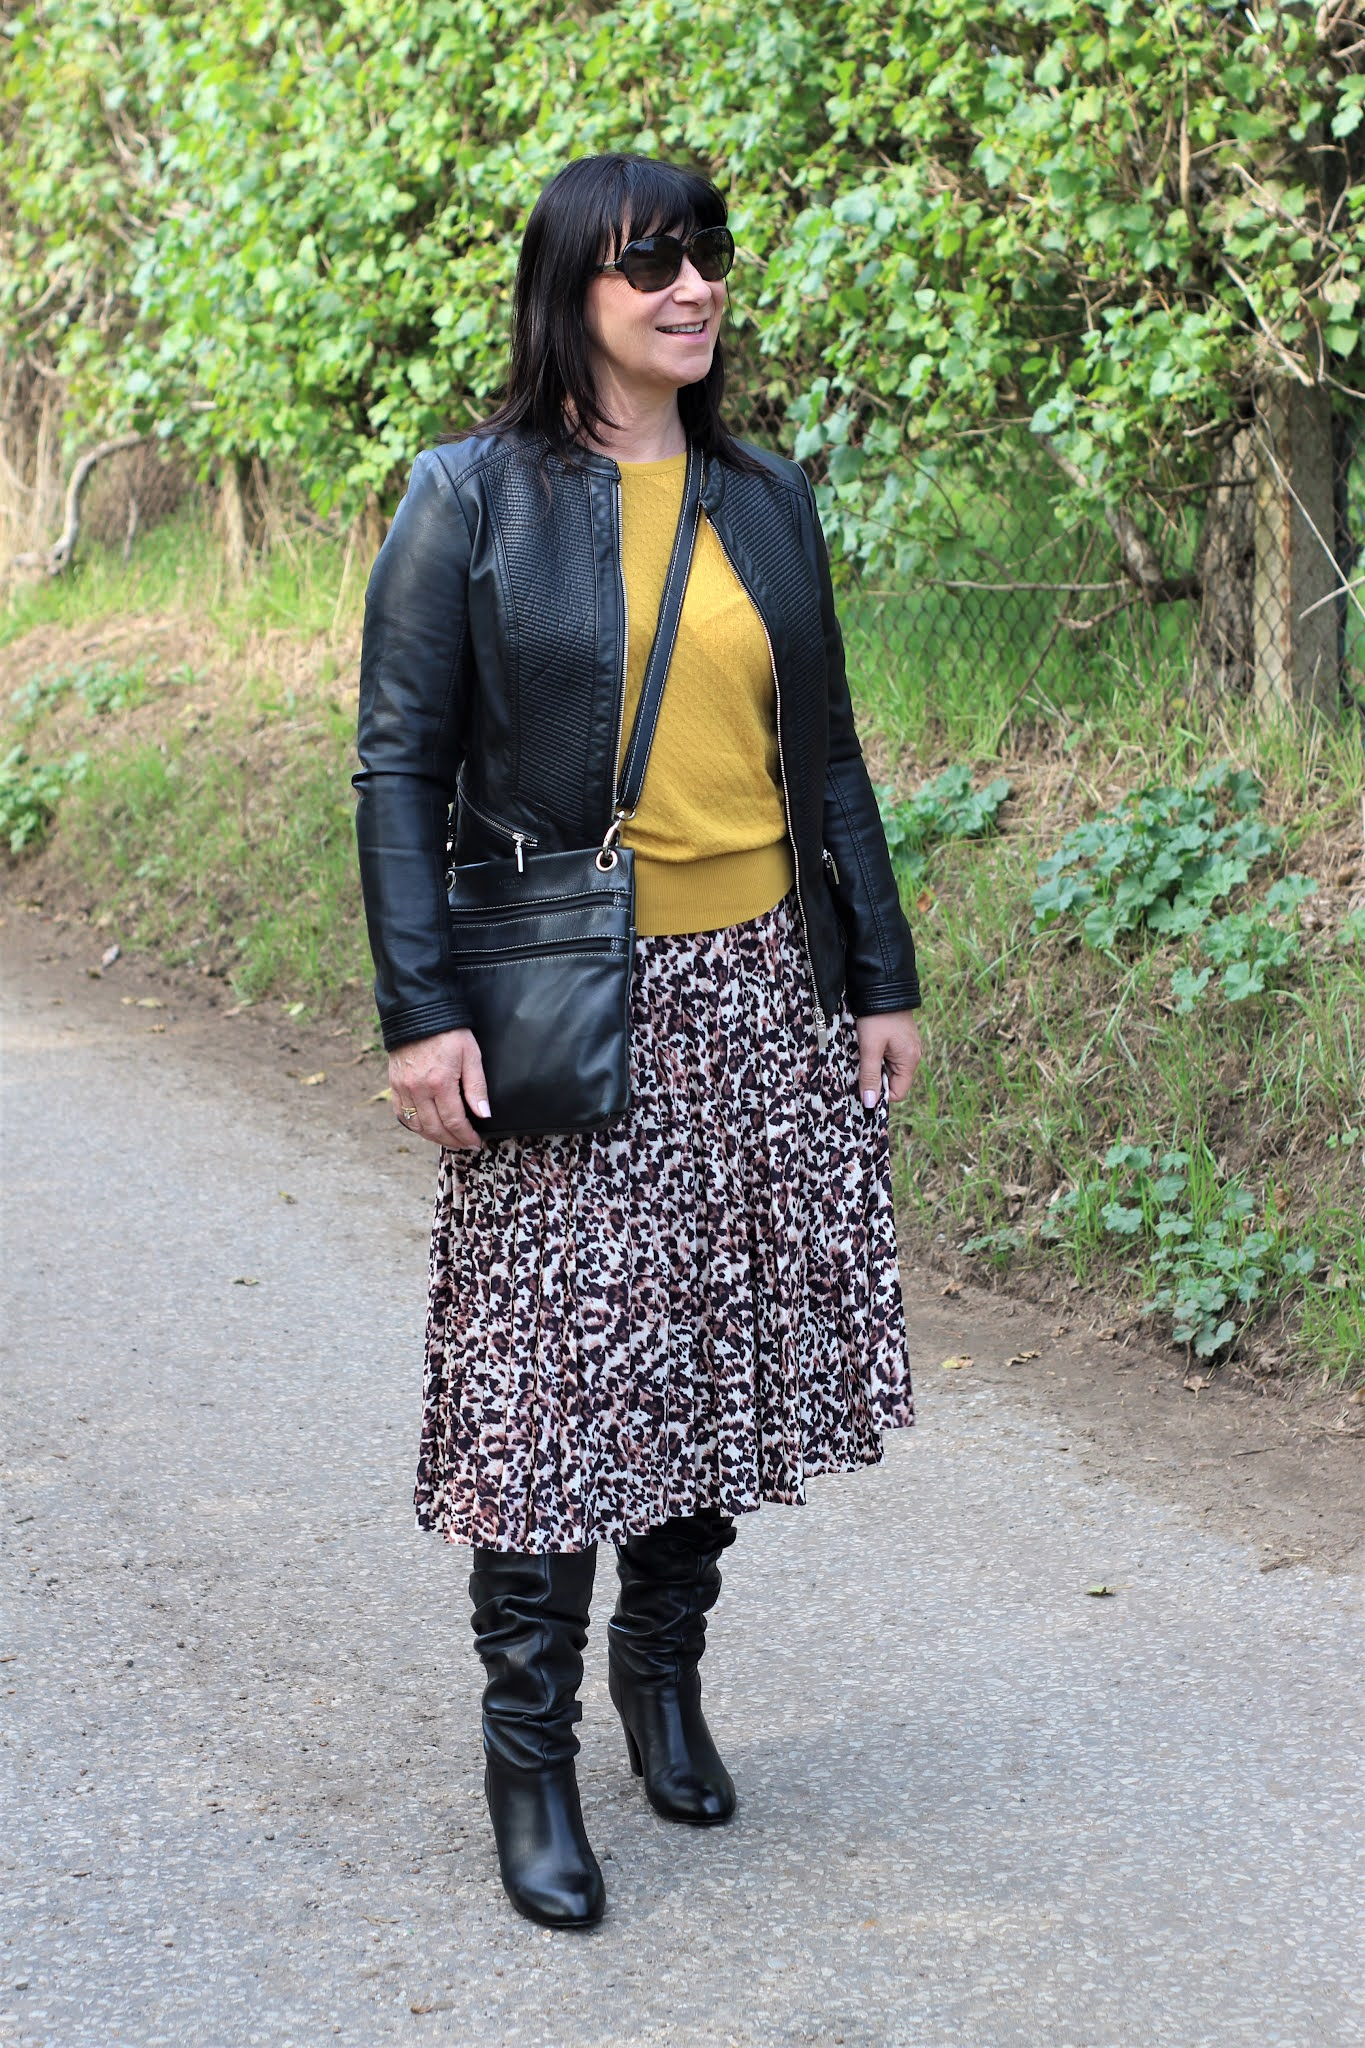 Leopard with Mustard & Black.